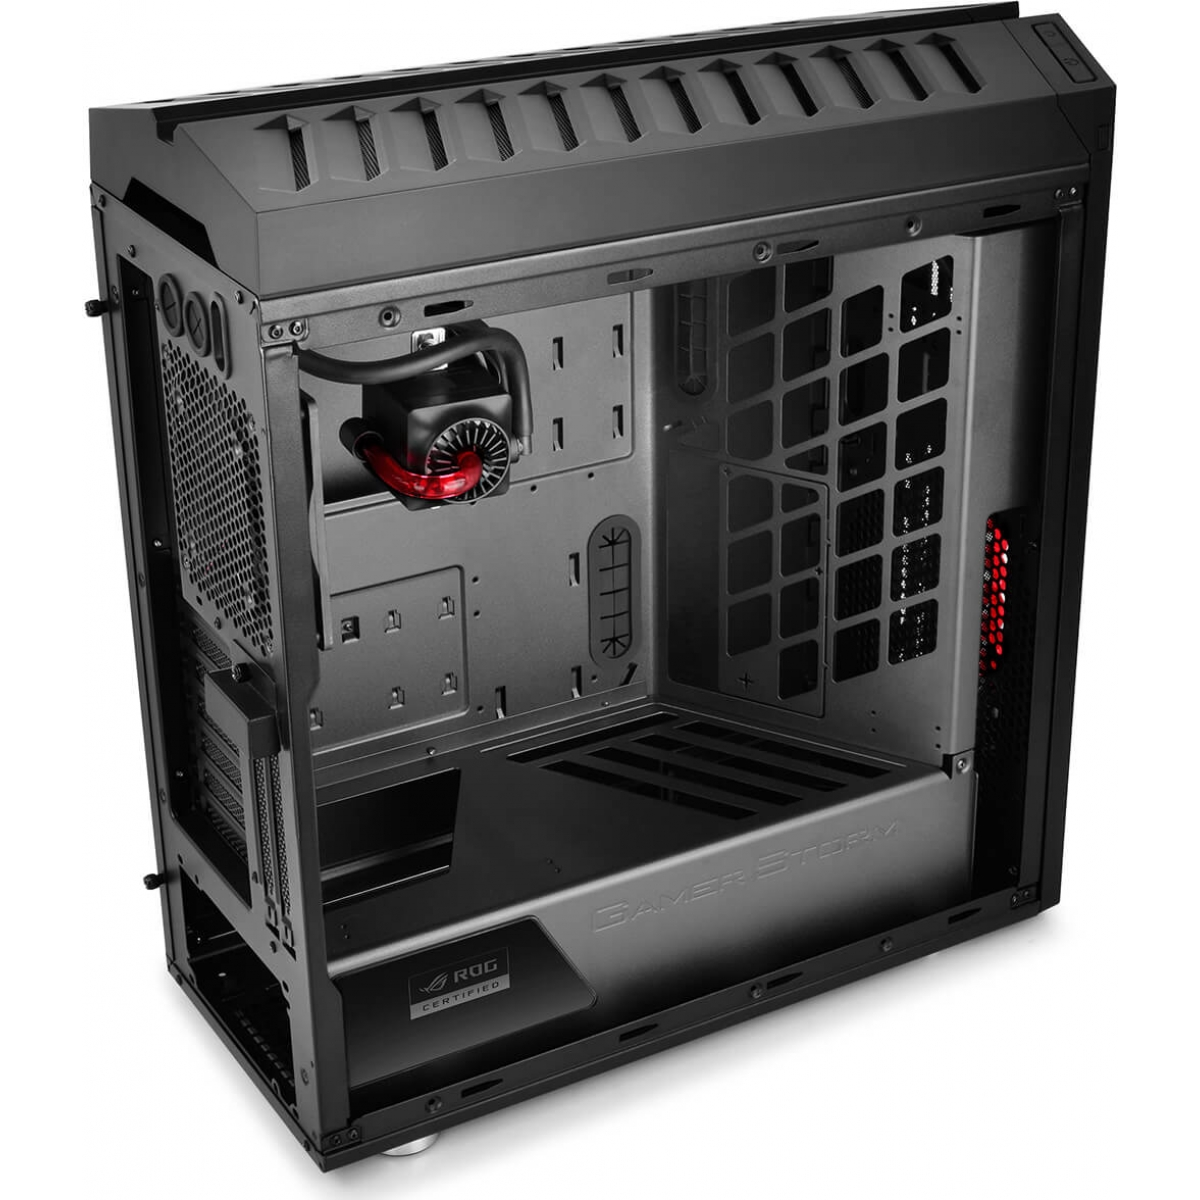 Gabinete Gamer DeepCool Genome Rog, Mid Tower, Com Water Captain 360mm, Lateral Acrílico, Black, Sem Fonte, DP-ATXLCS-GEN-ROG2